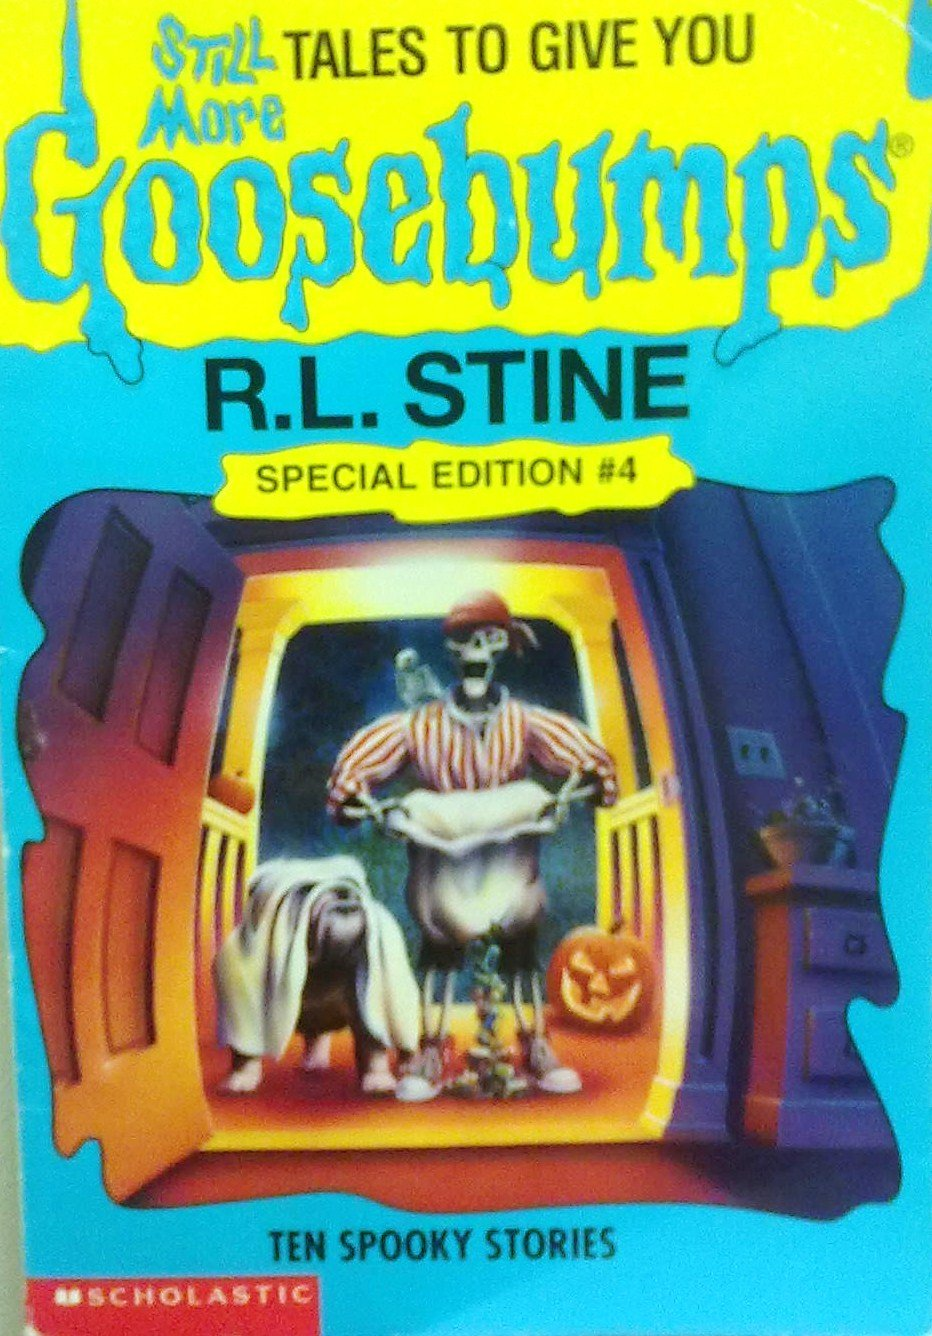 Still more tales to give you goosebumps ten spooky stories still more tales to give you goosebumps ten spooky stories goosebumps special edition no 4 r l stine 9780590739085 amazon books fandeluxe Gallery